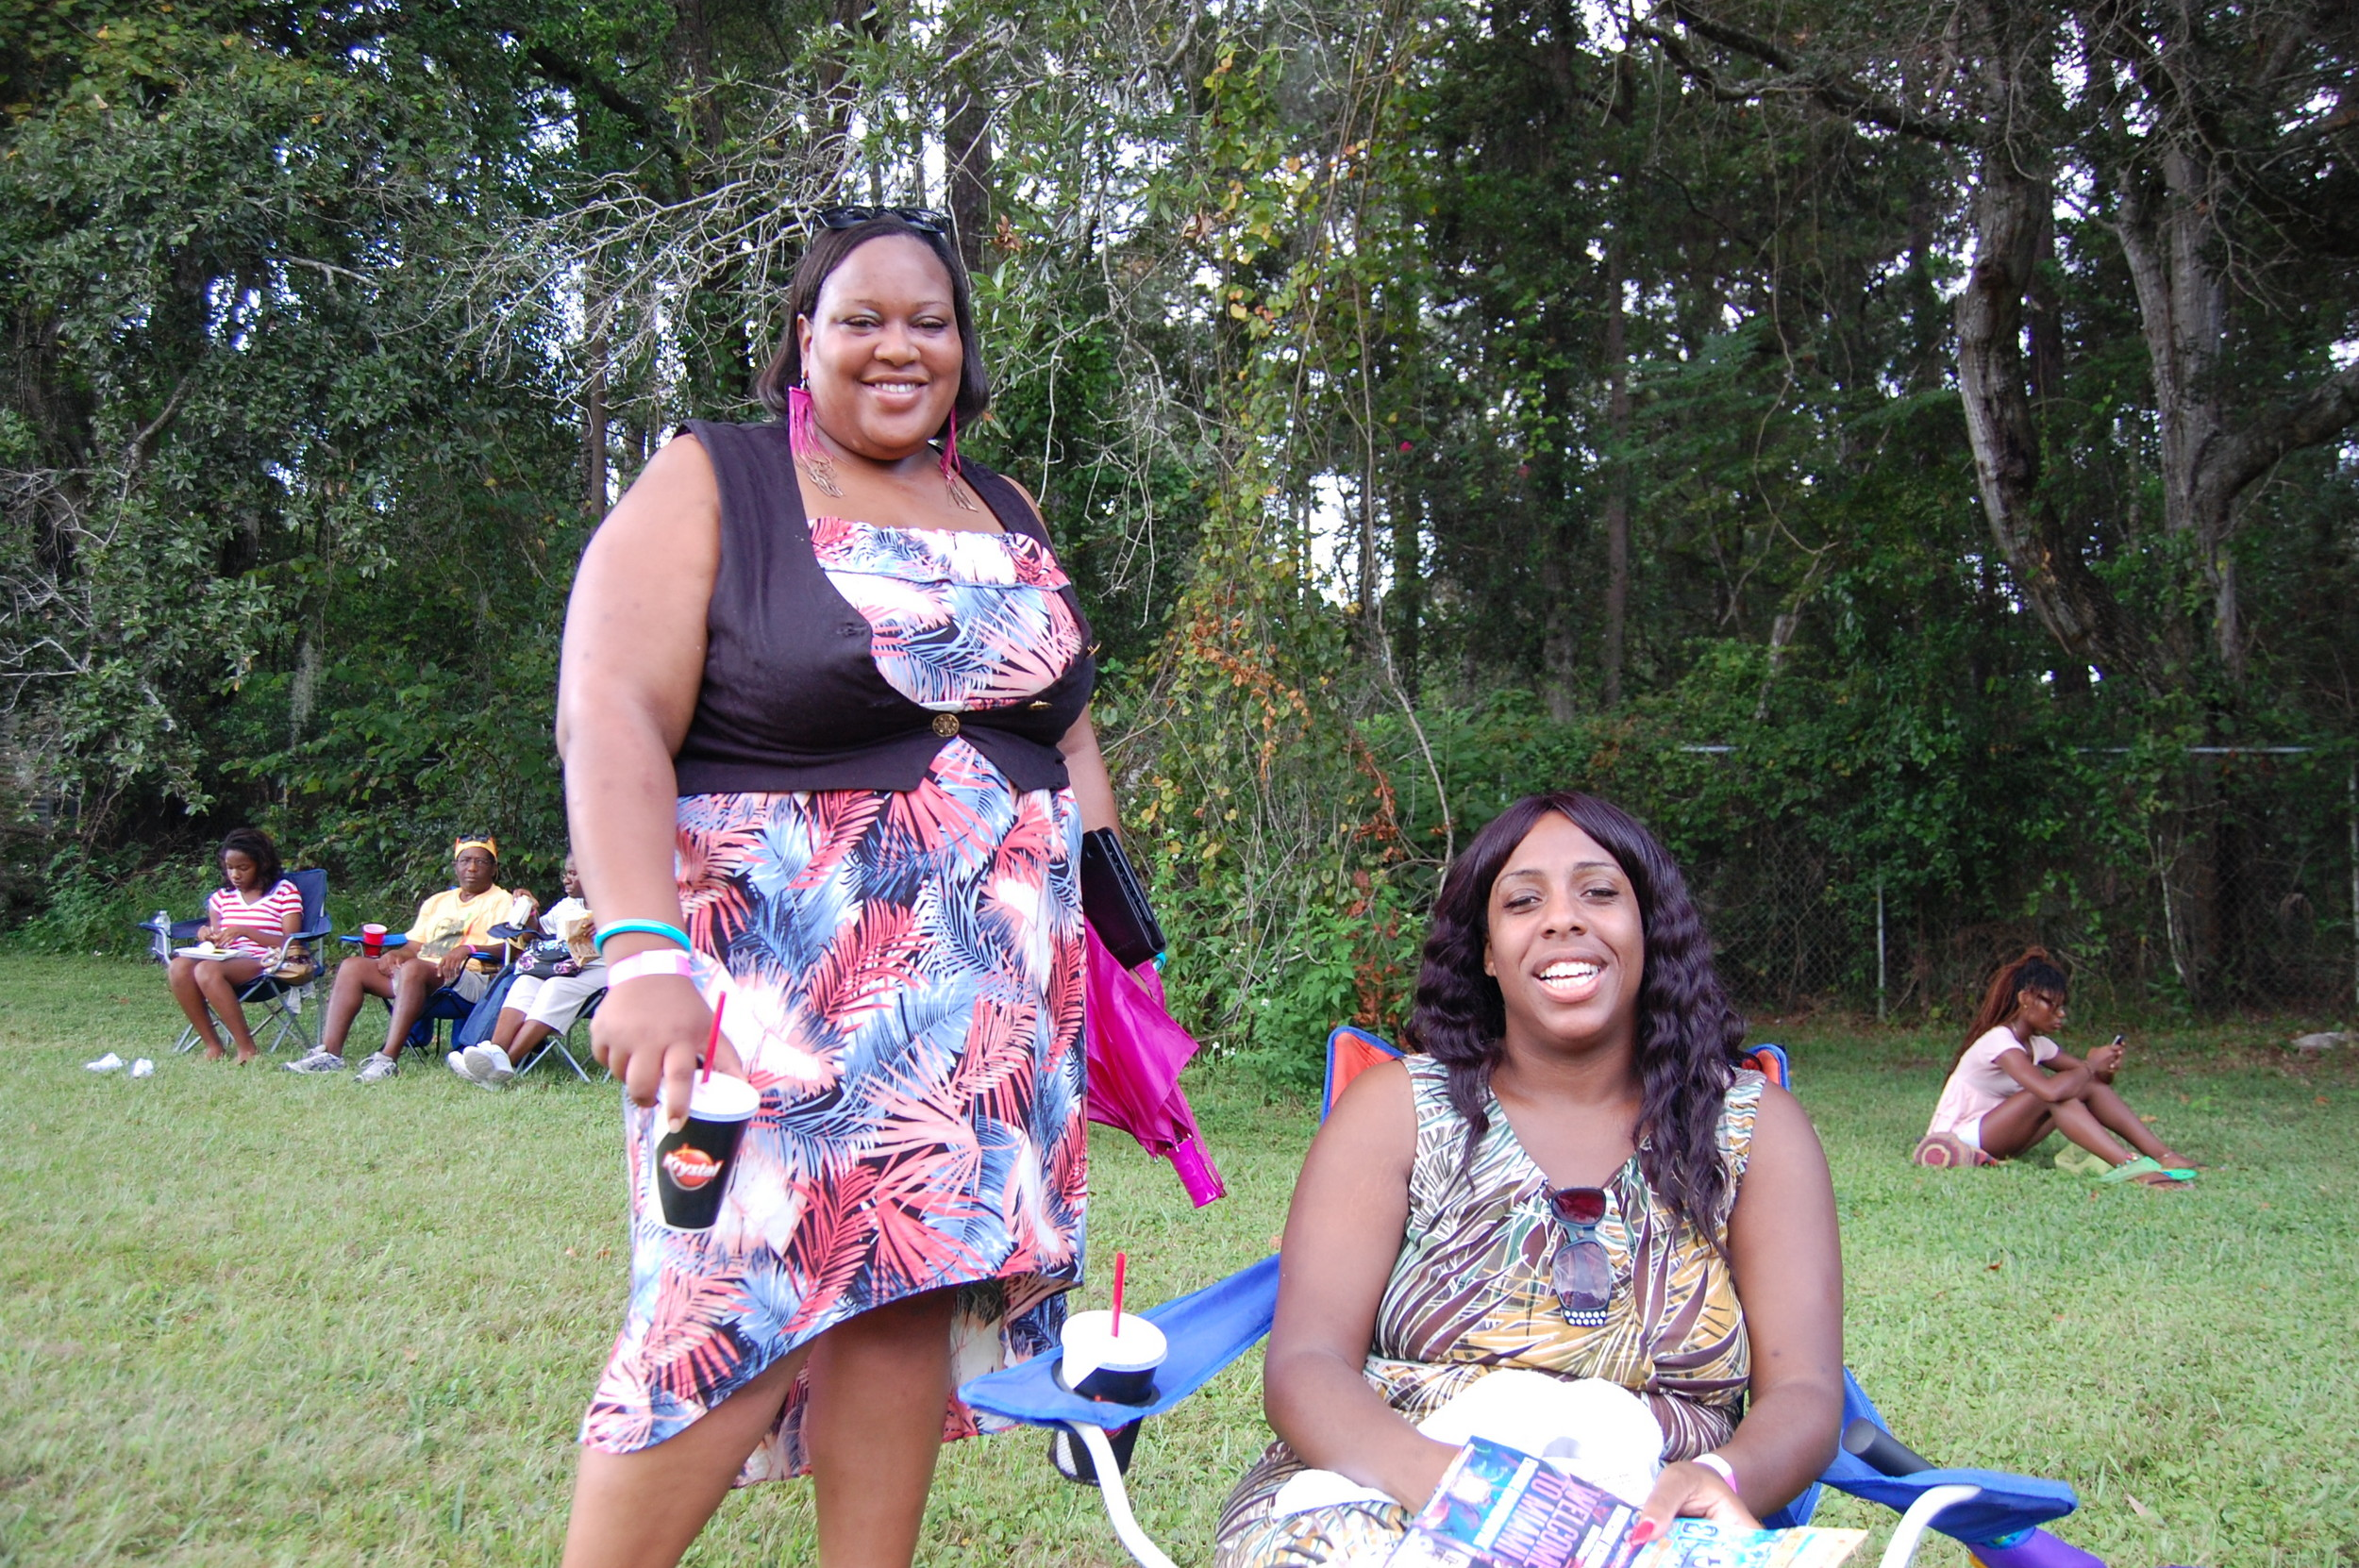 Shaunta Buckley, Lisa Merriet